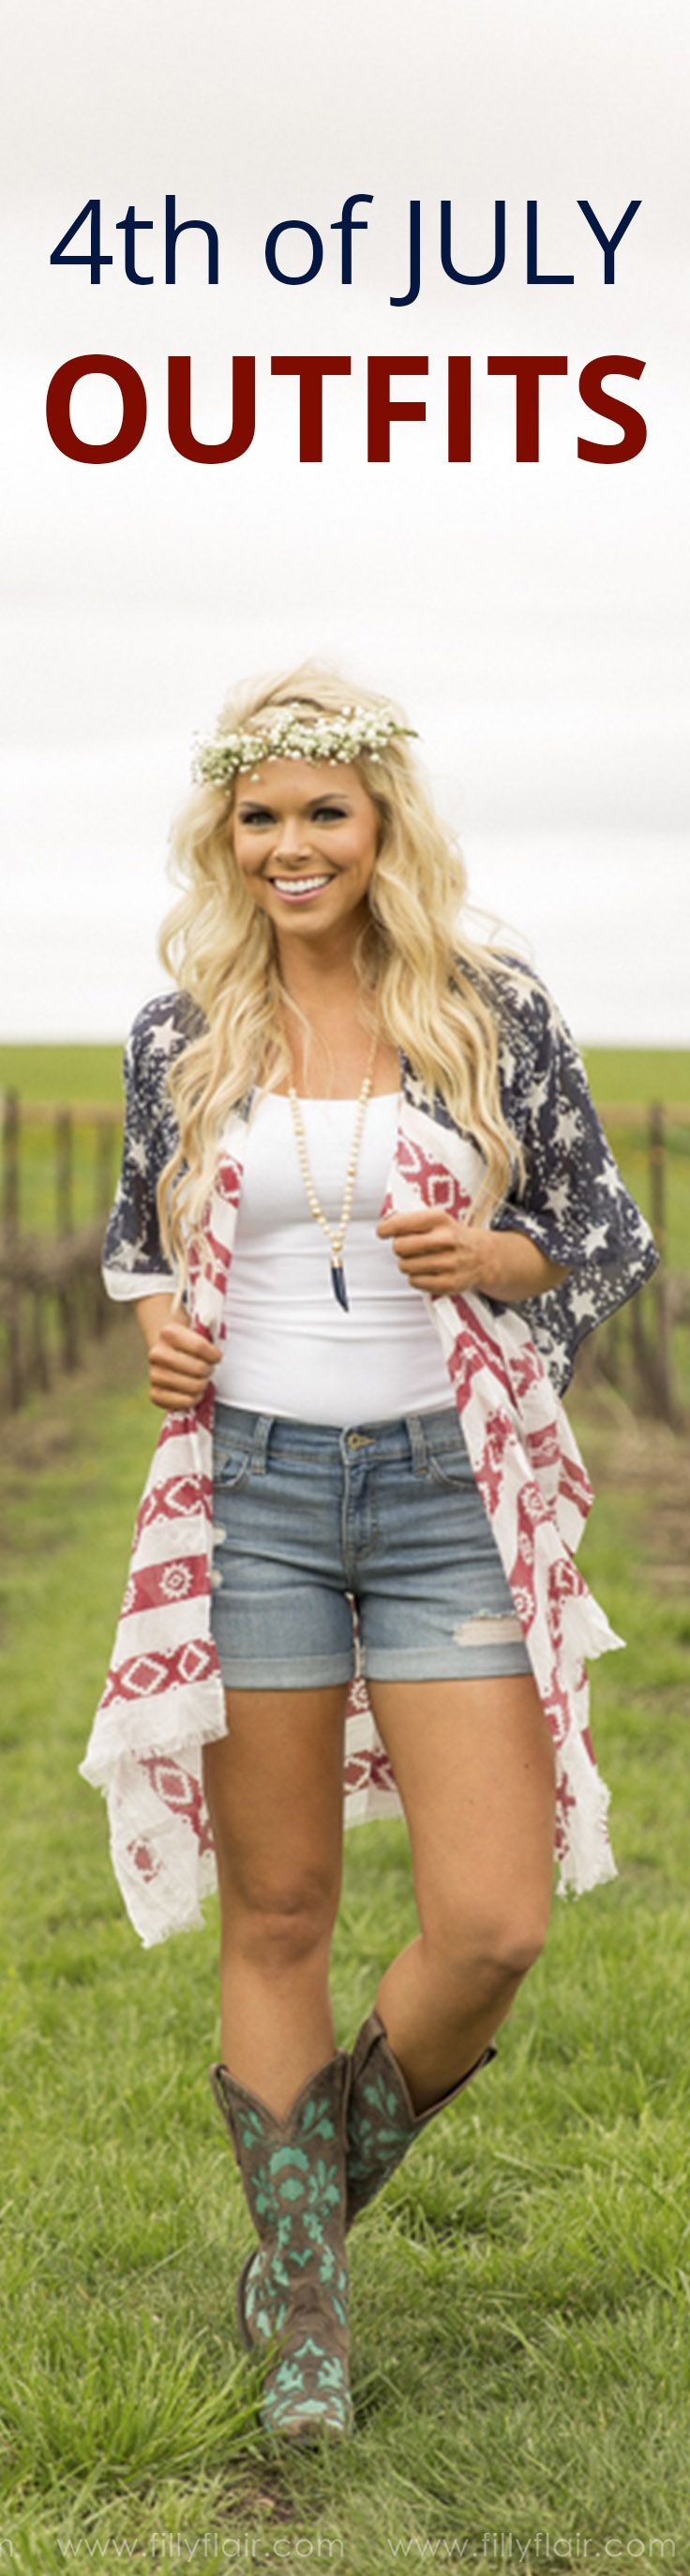 The best selection of 4th of July outfits!